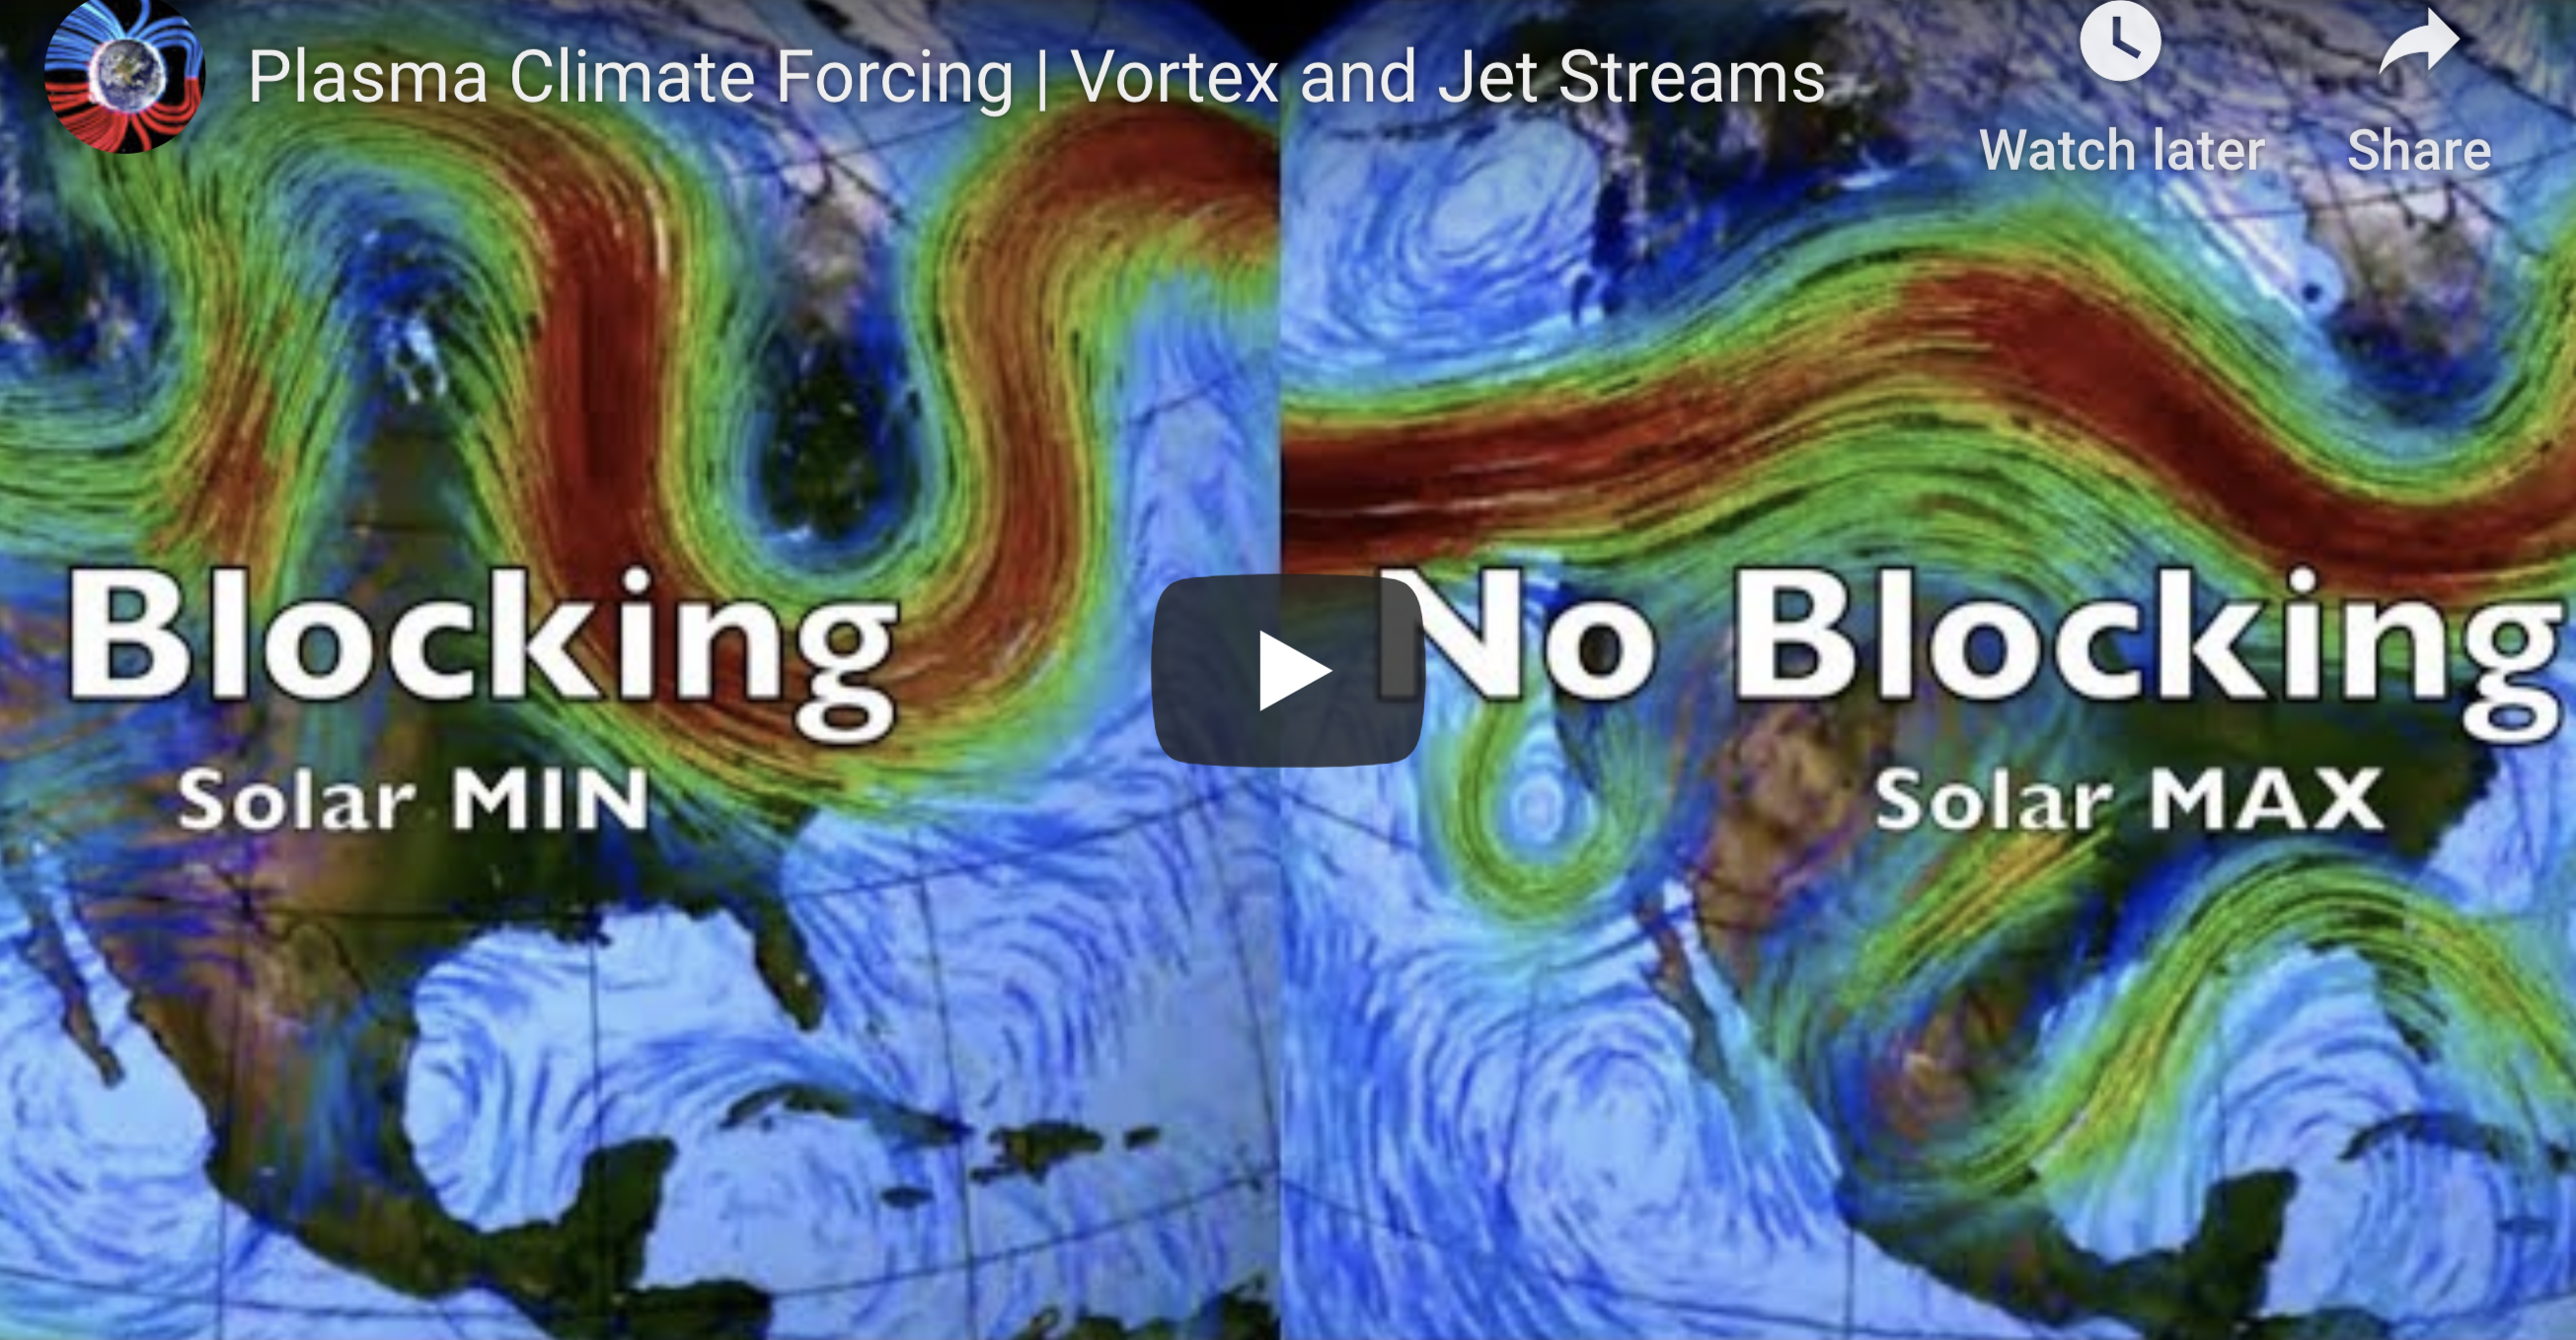 Plasma Climate Forcing Vortex and Jet Streams 1 7 2020